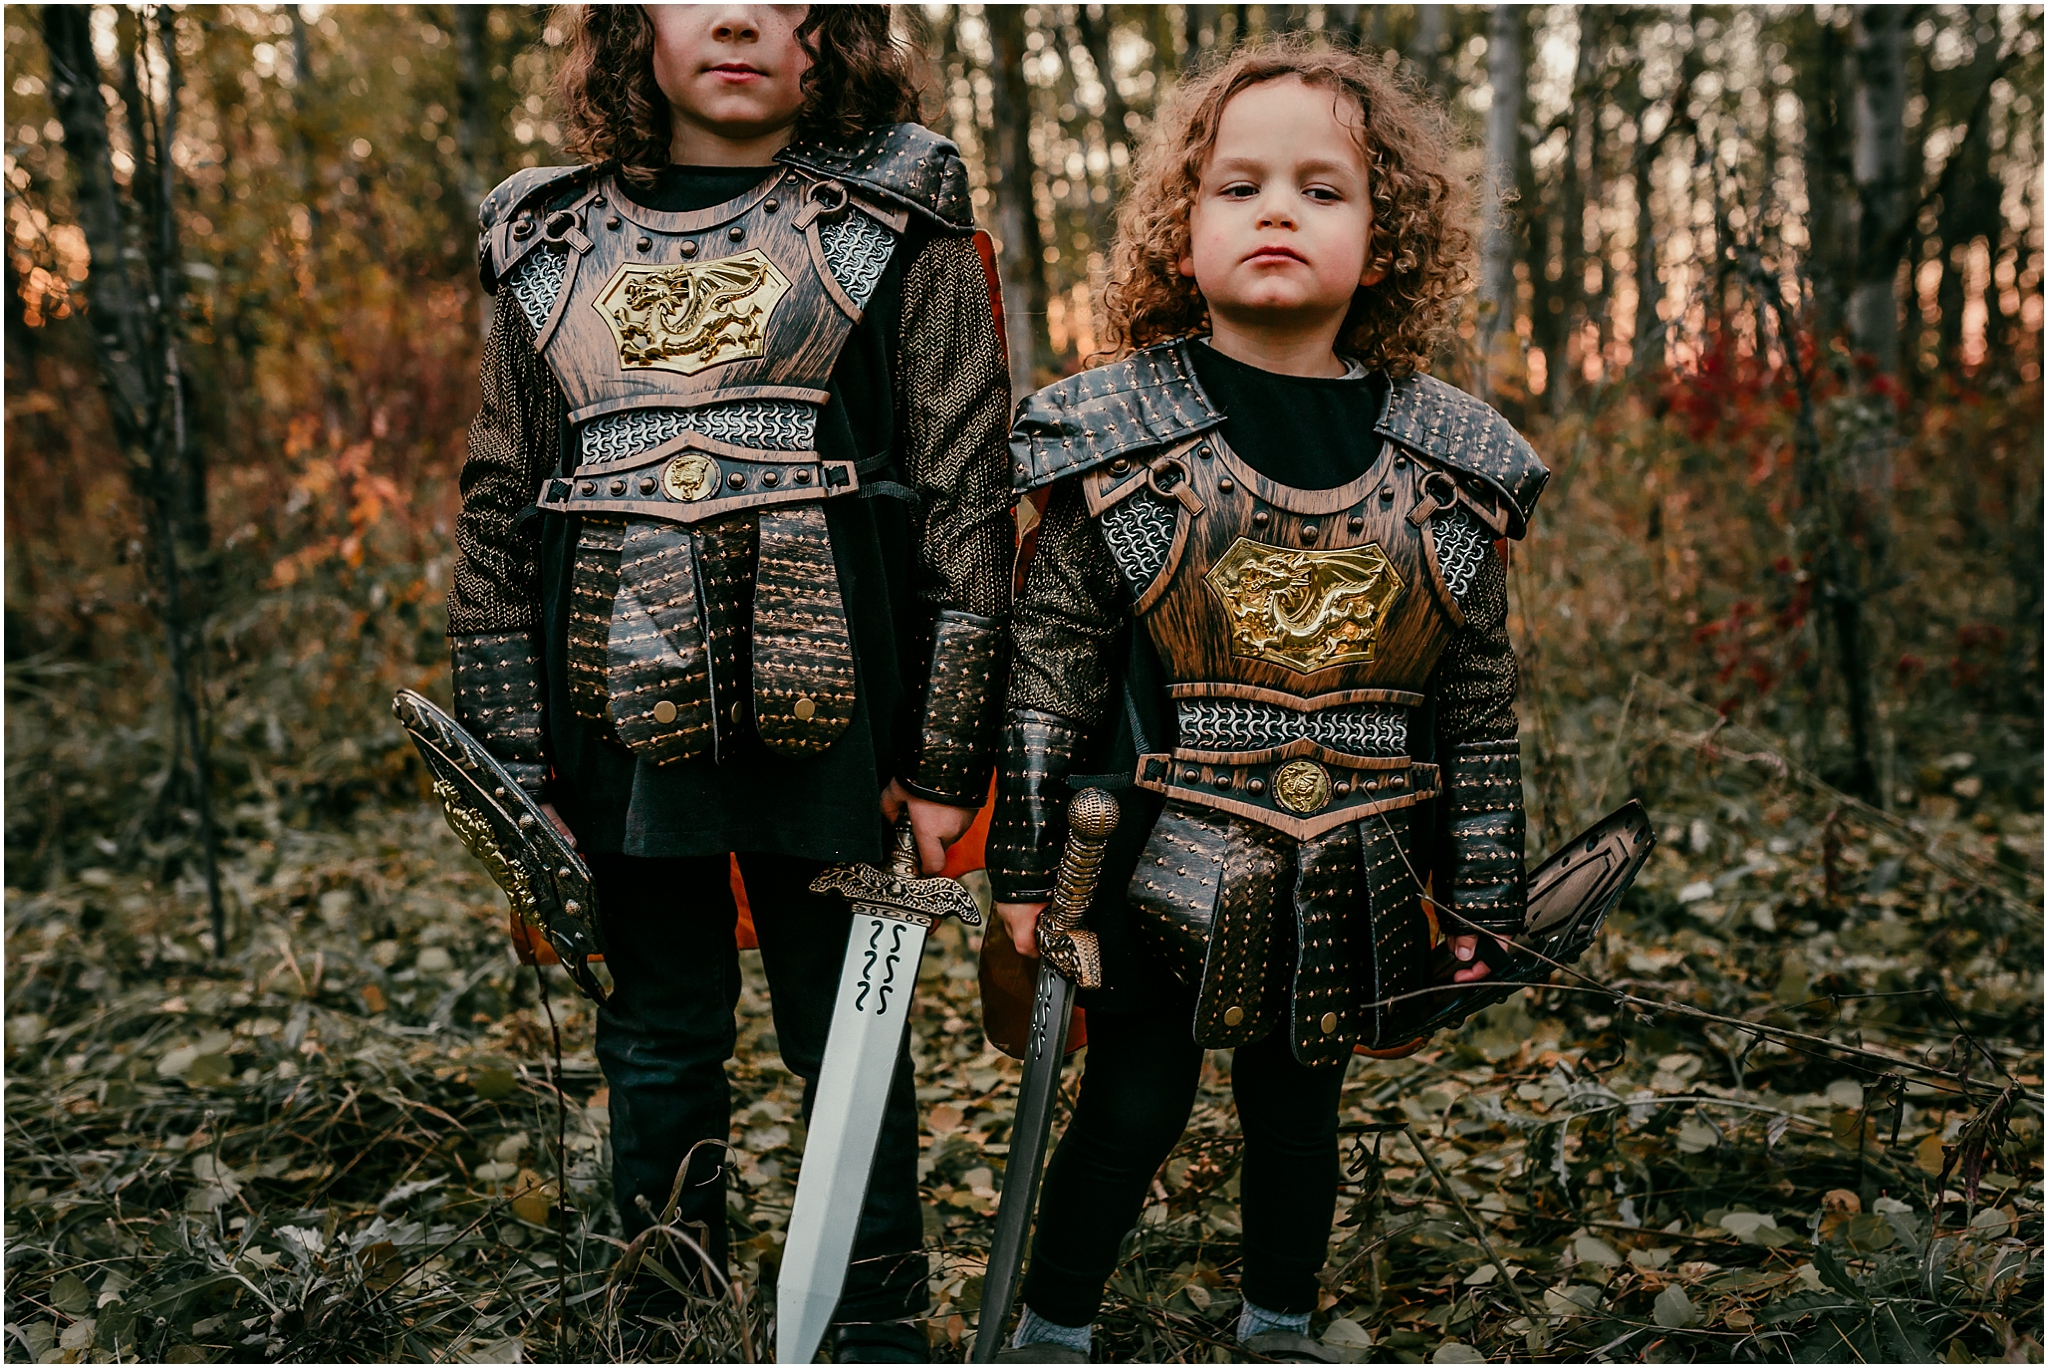 Treelines photography - Edmonton Family Photographer - Halloween knight costumes